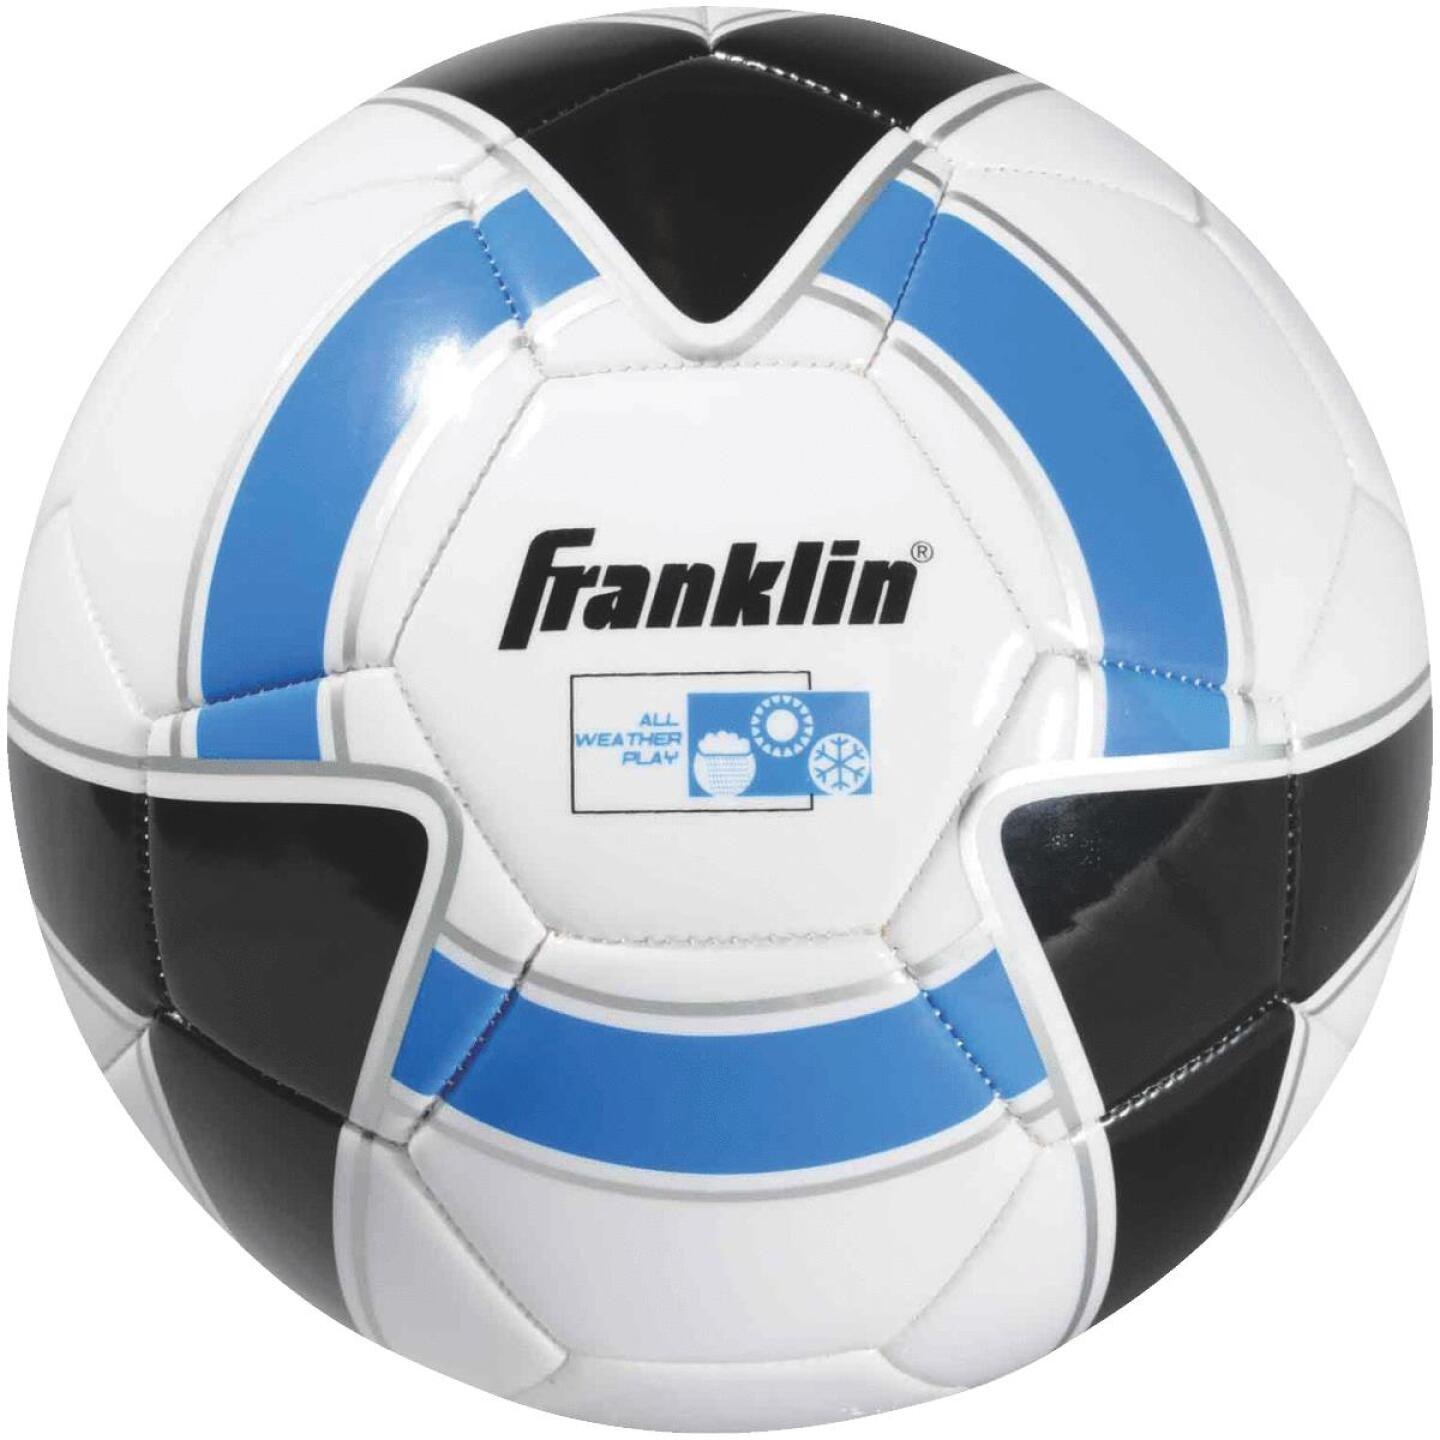 Franklin Size 4 Soccer Ball  Image 1